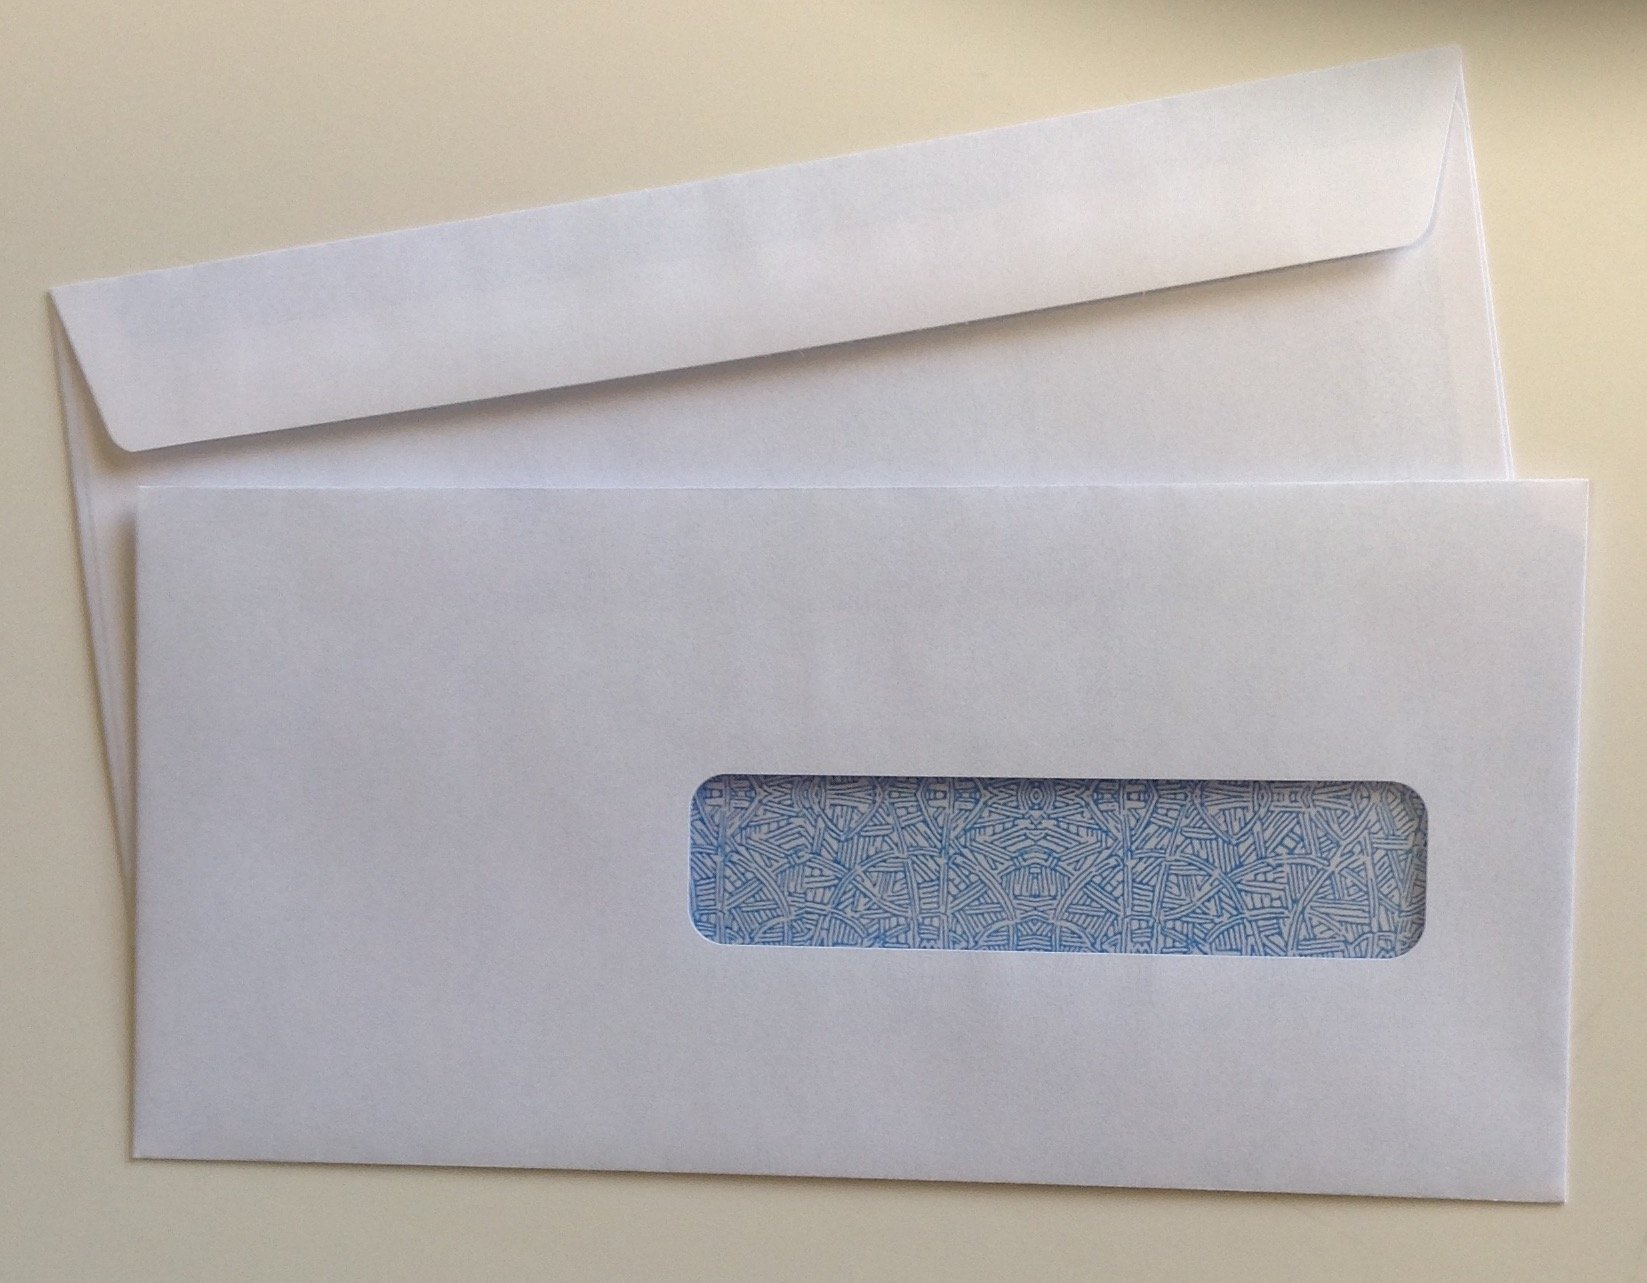 CMS 1500 - HCFA Window Envelopes for Claim Forms (No. 10-1/2) 4-1/2'' x 9-1/2'', White with Inside Security Tint - 250 ENVELOPES